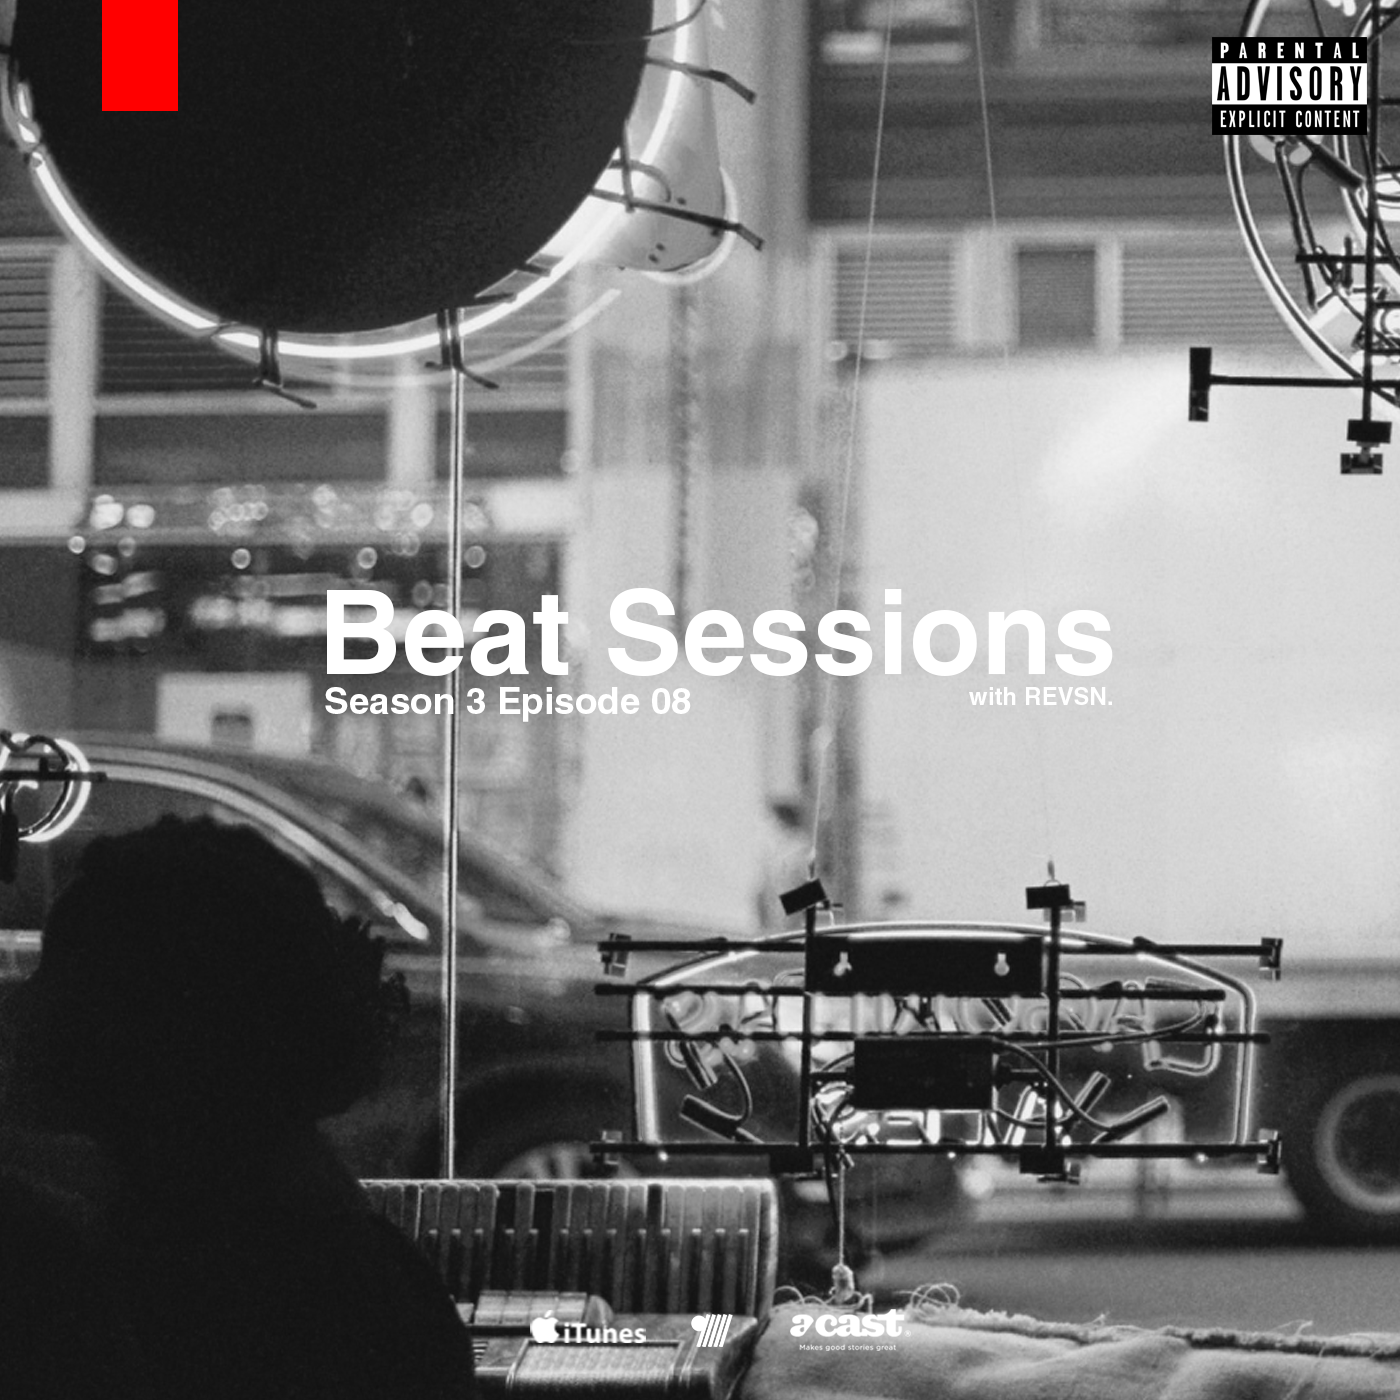 Beat Sessions: S03E08 with REVSN.